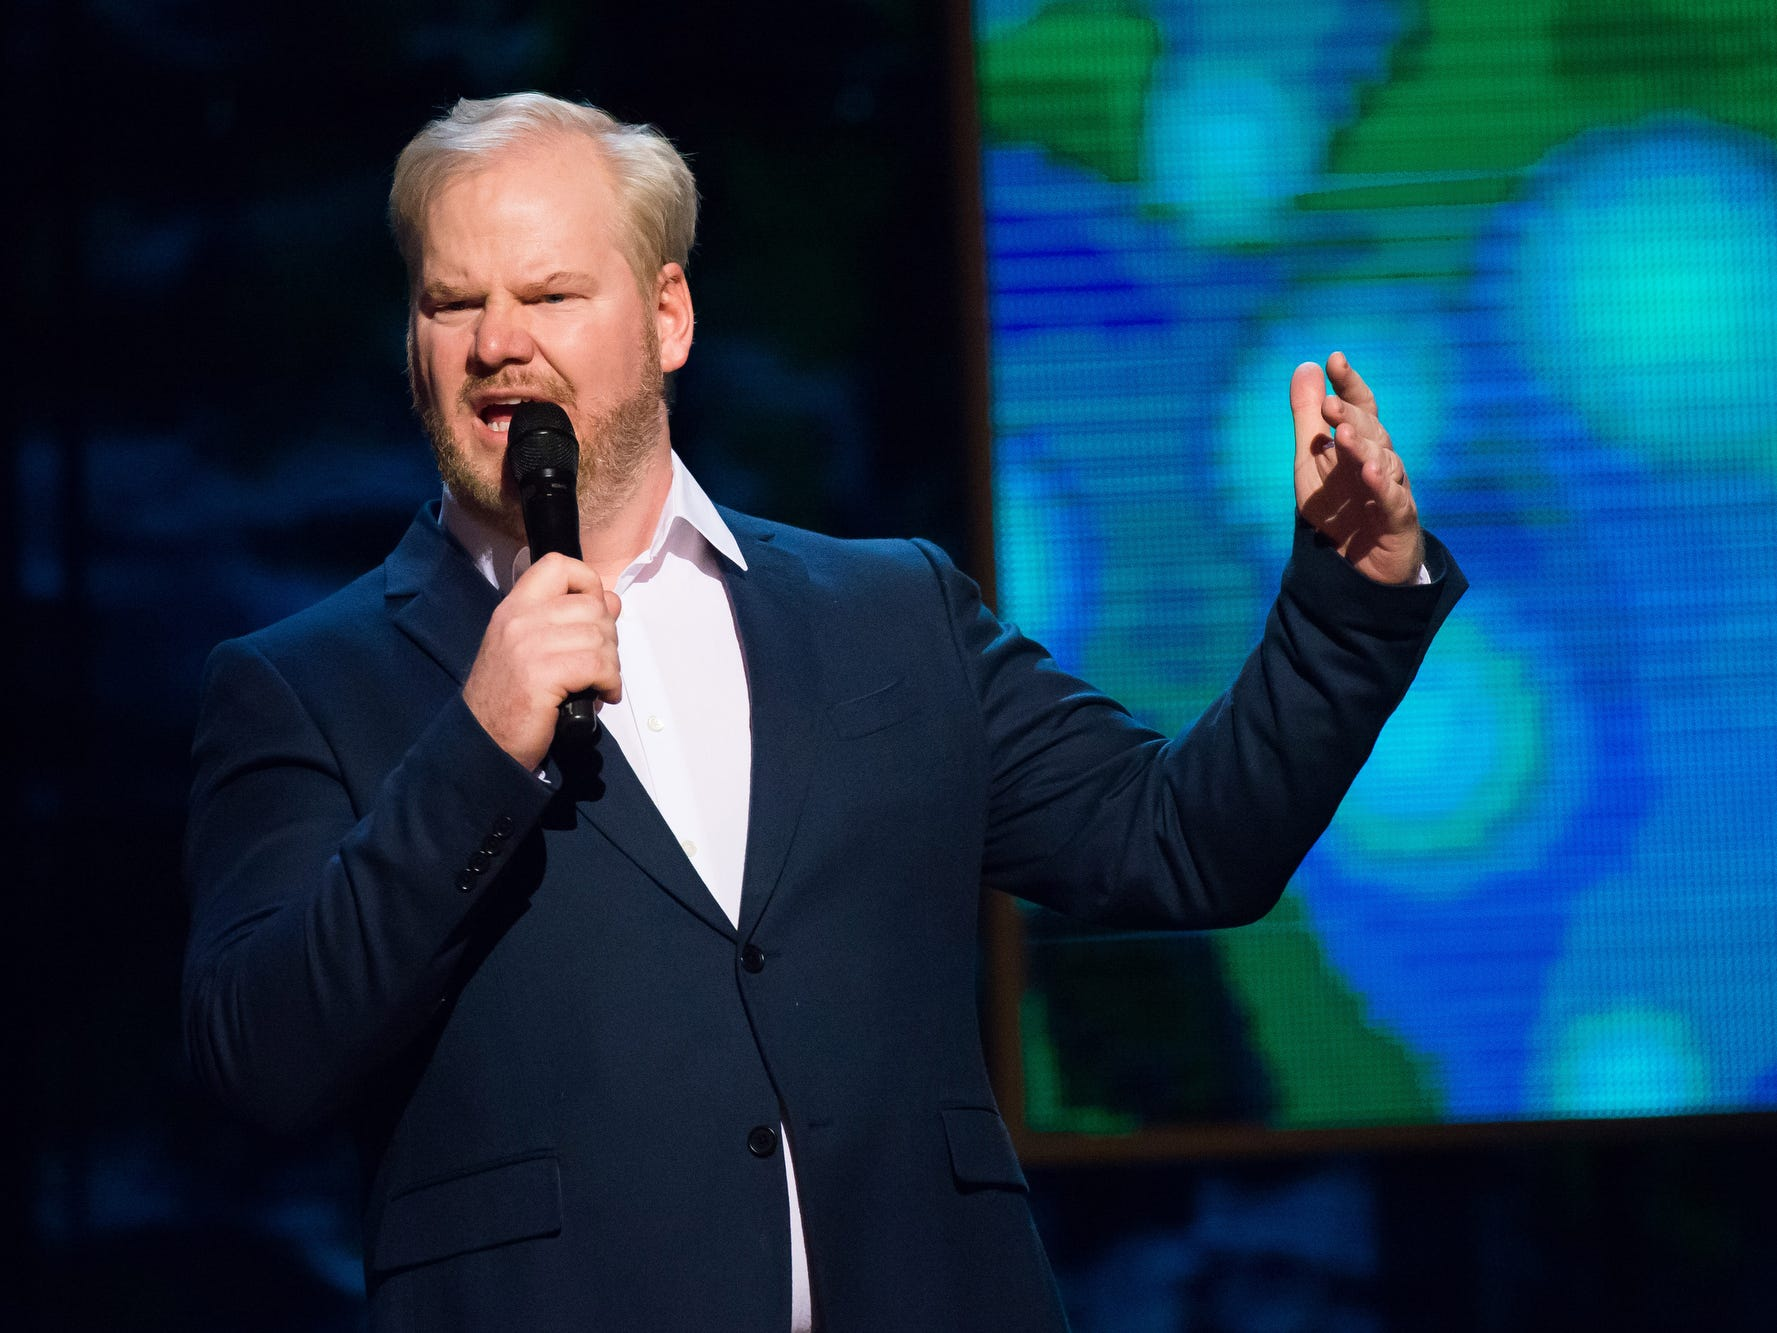 OCT. 13